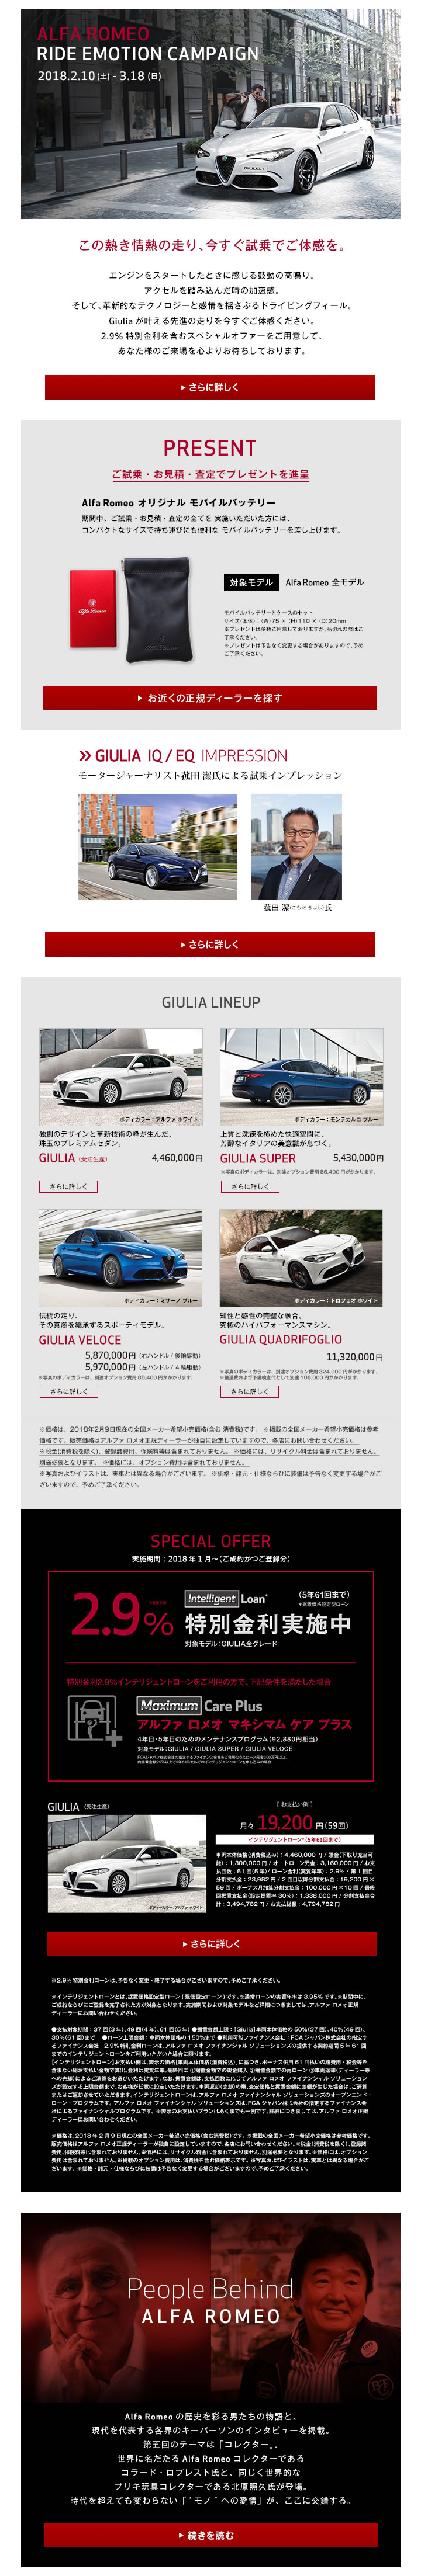 ALFA ROMEO RIDE EMOTION  CAMPAIGN 2018.2.10(SAT)-3.18(SUN)